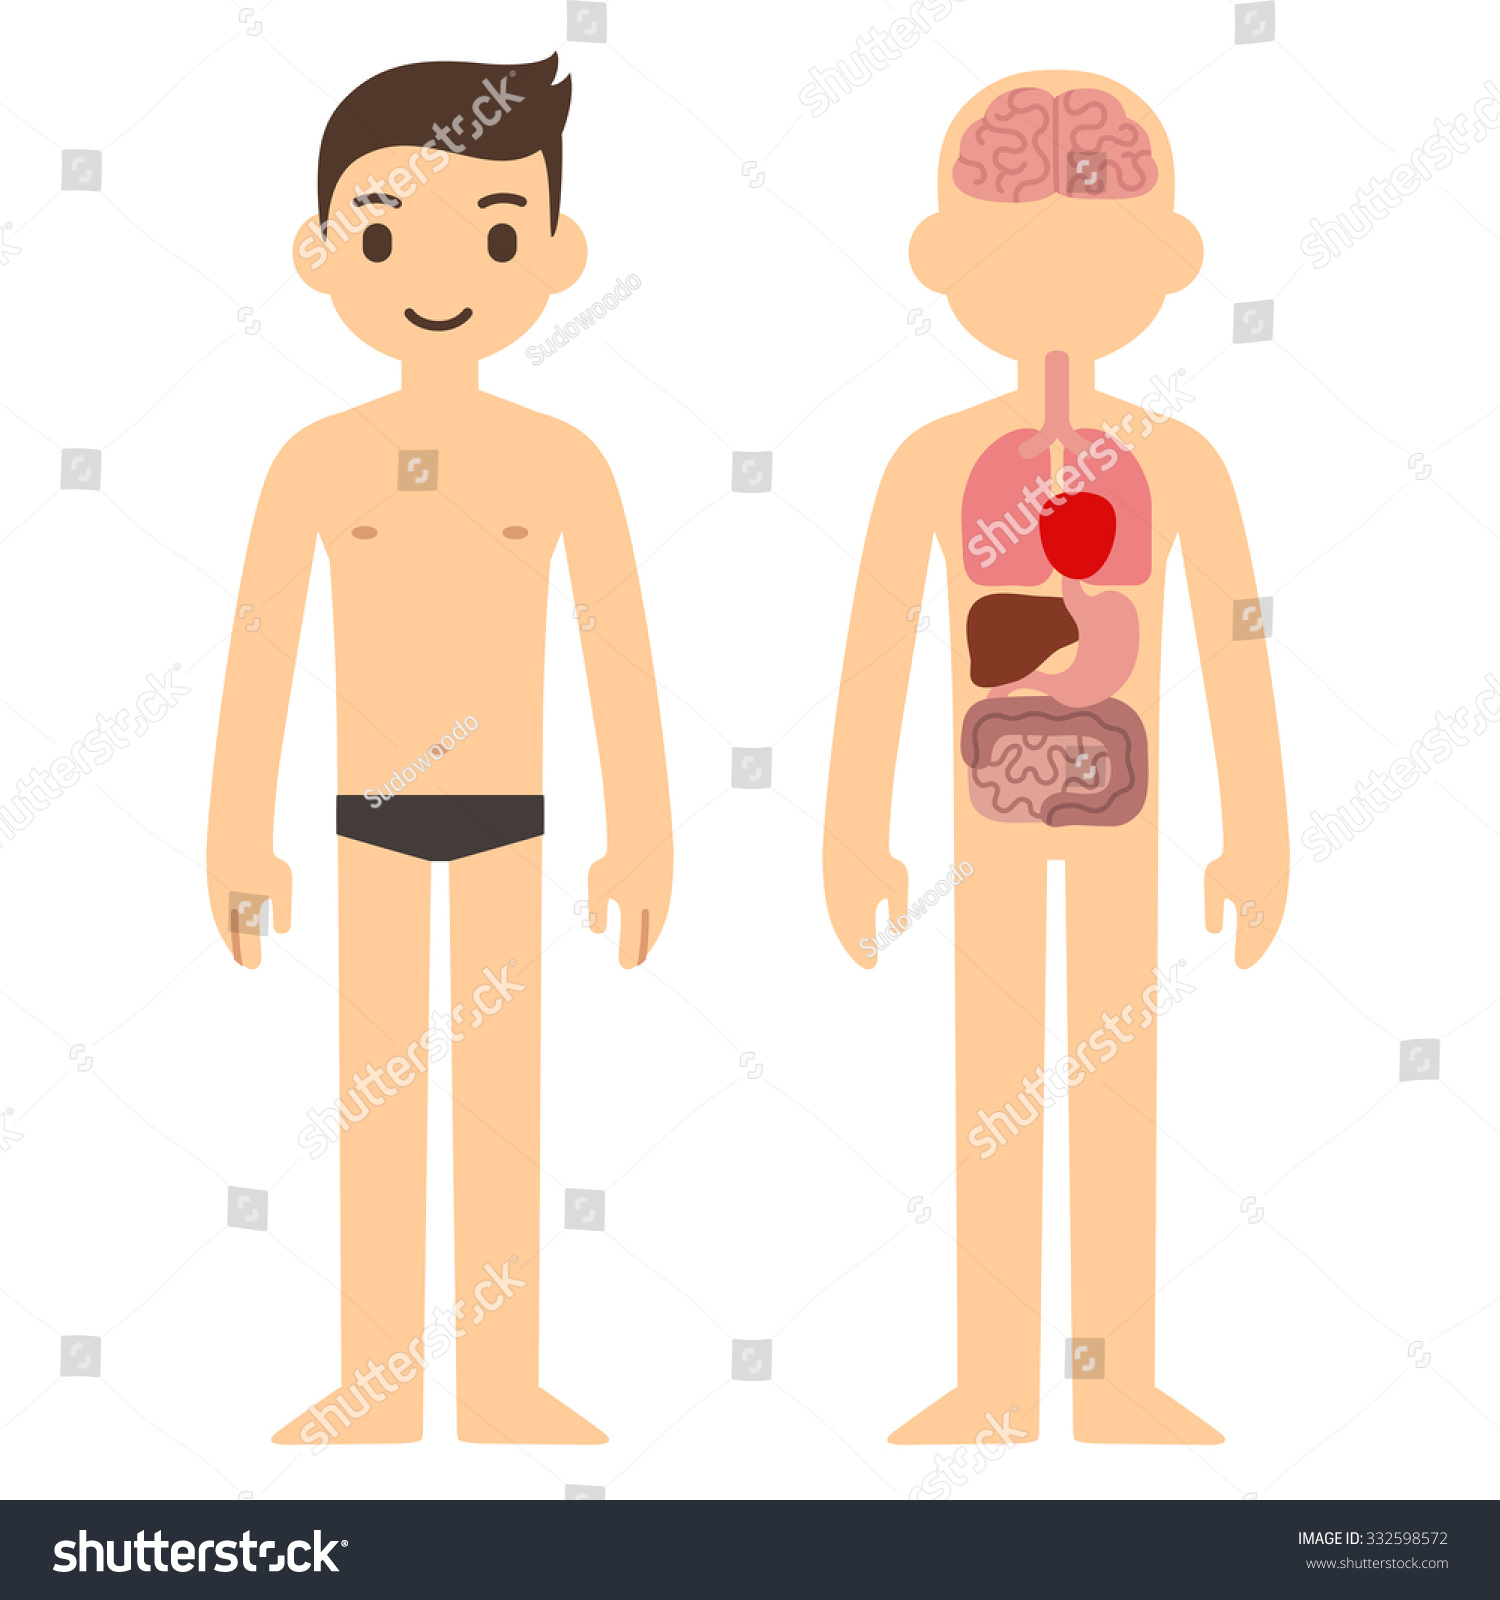 Human Internal Organ Infographic Chart Stylized Stock Illustration